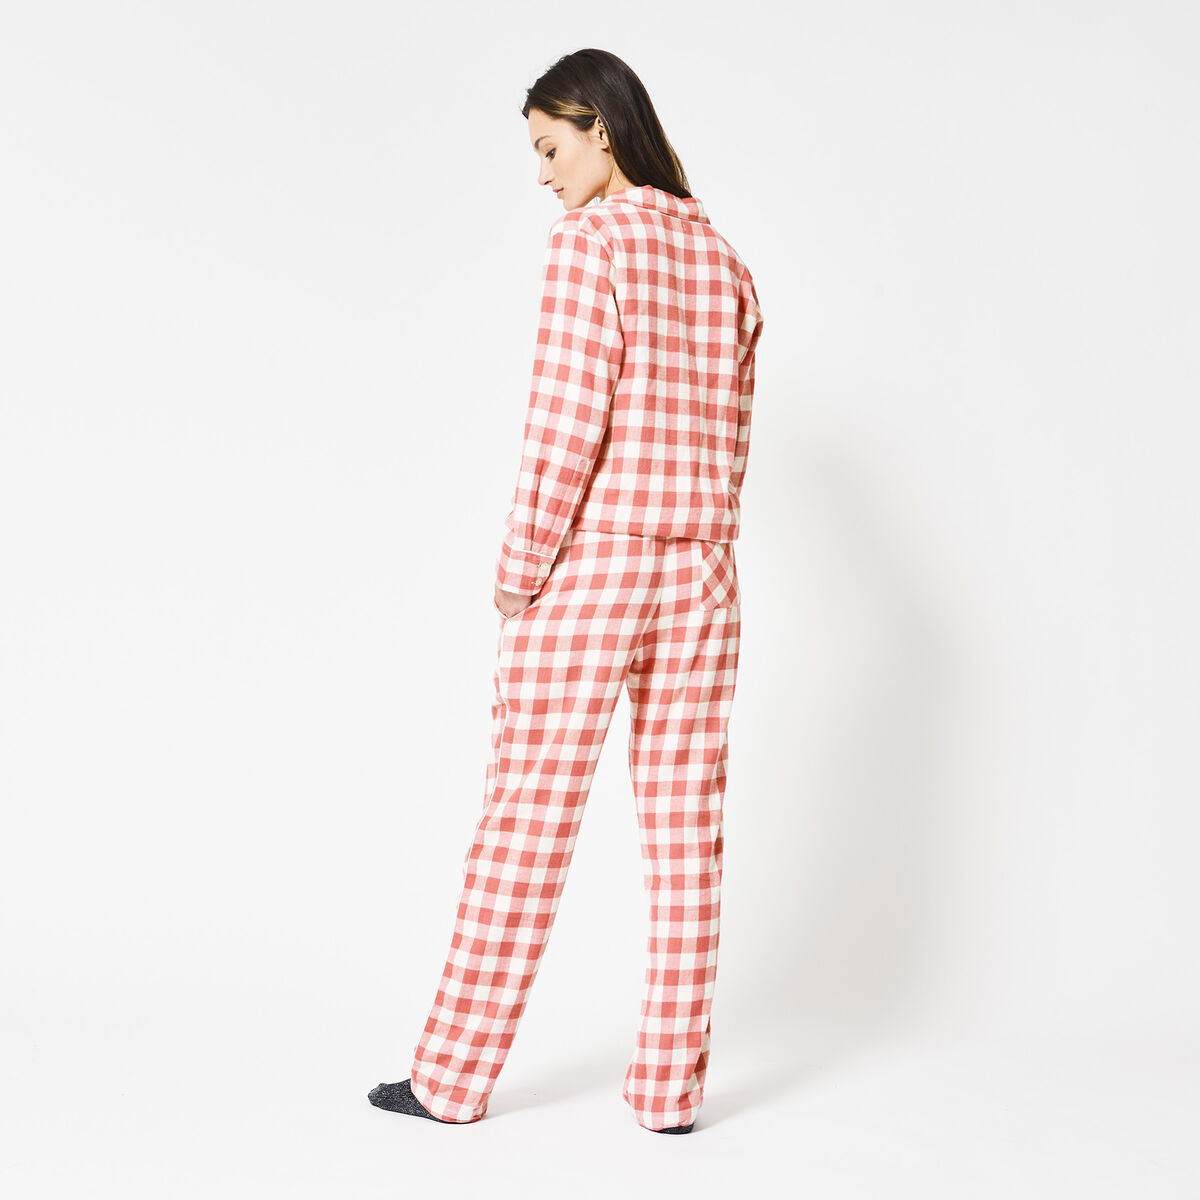 Pyjama Labello PJ shirt